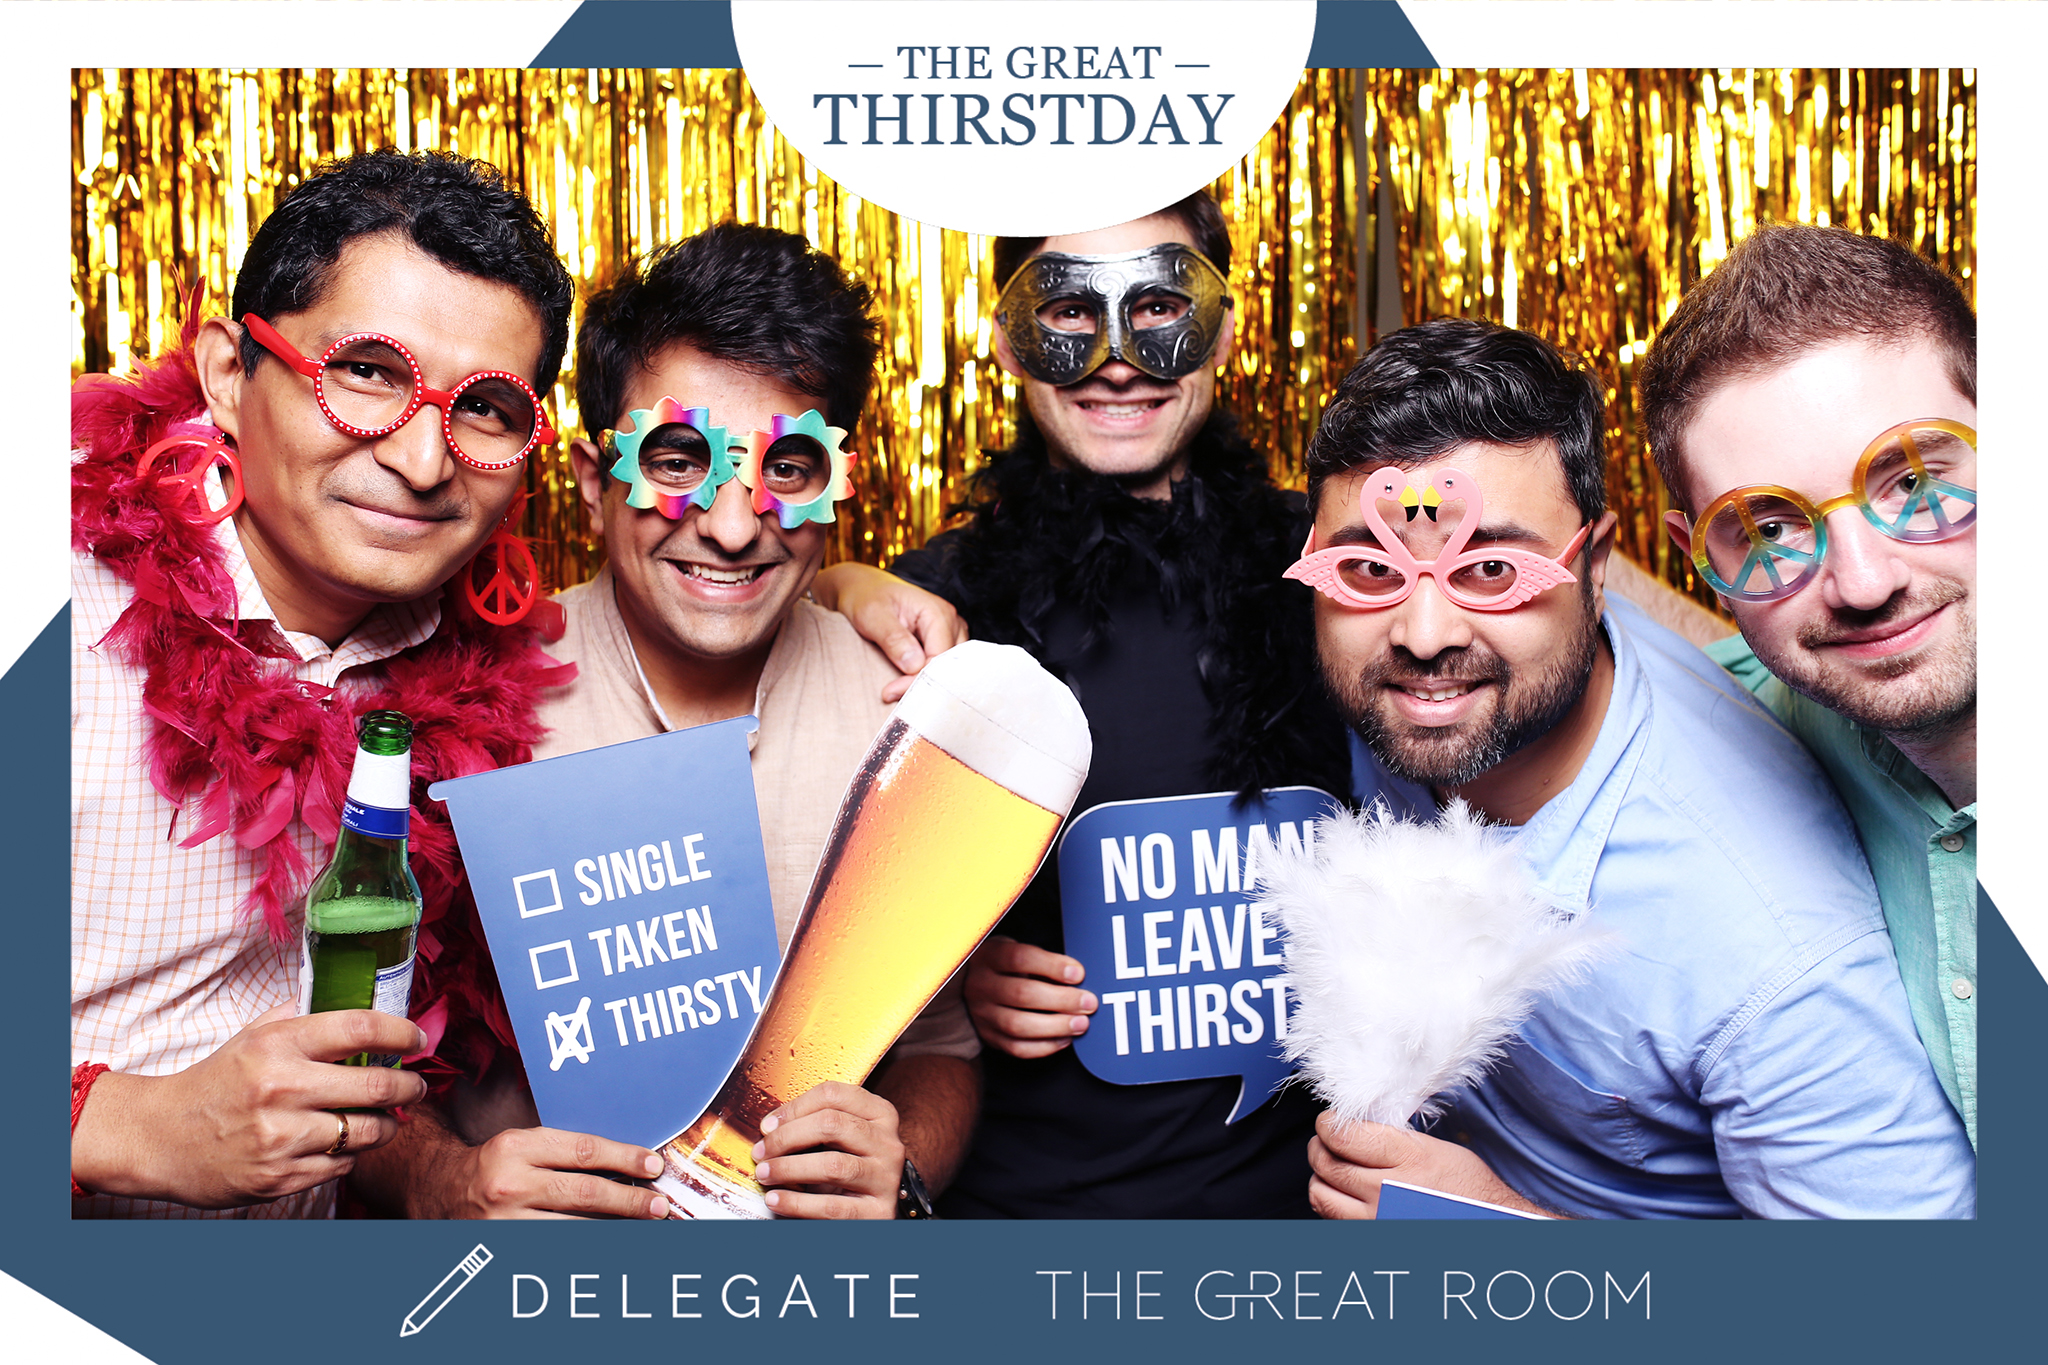 Delegate x The Great Thirstday16